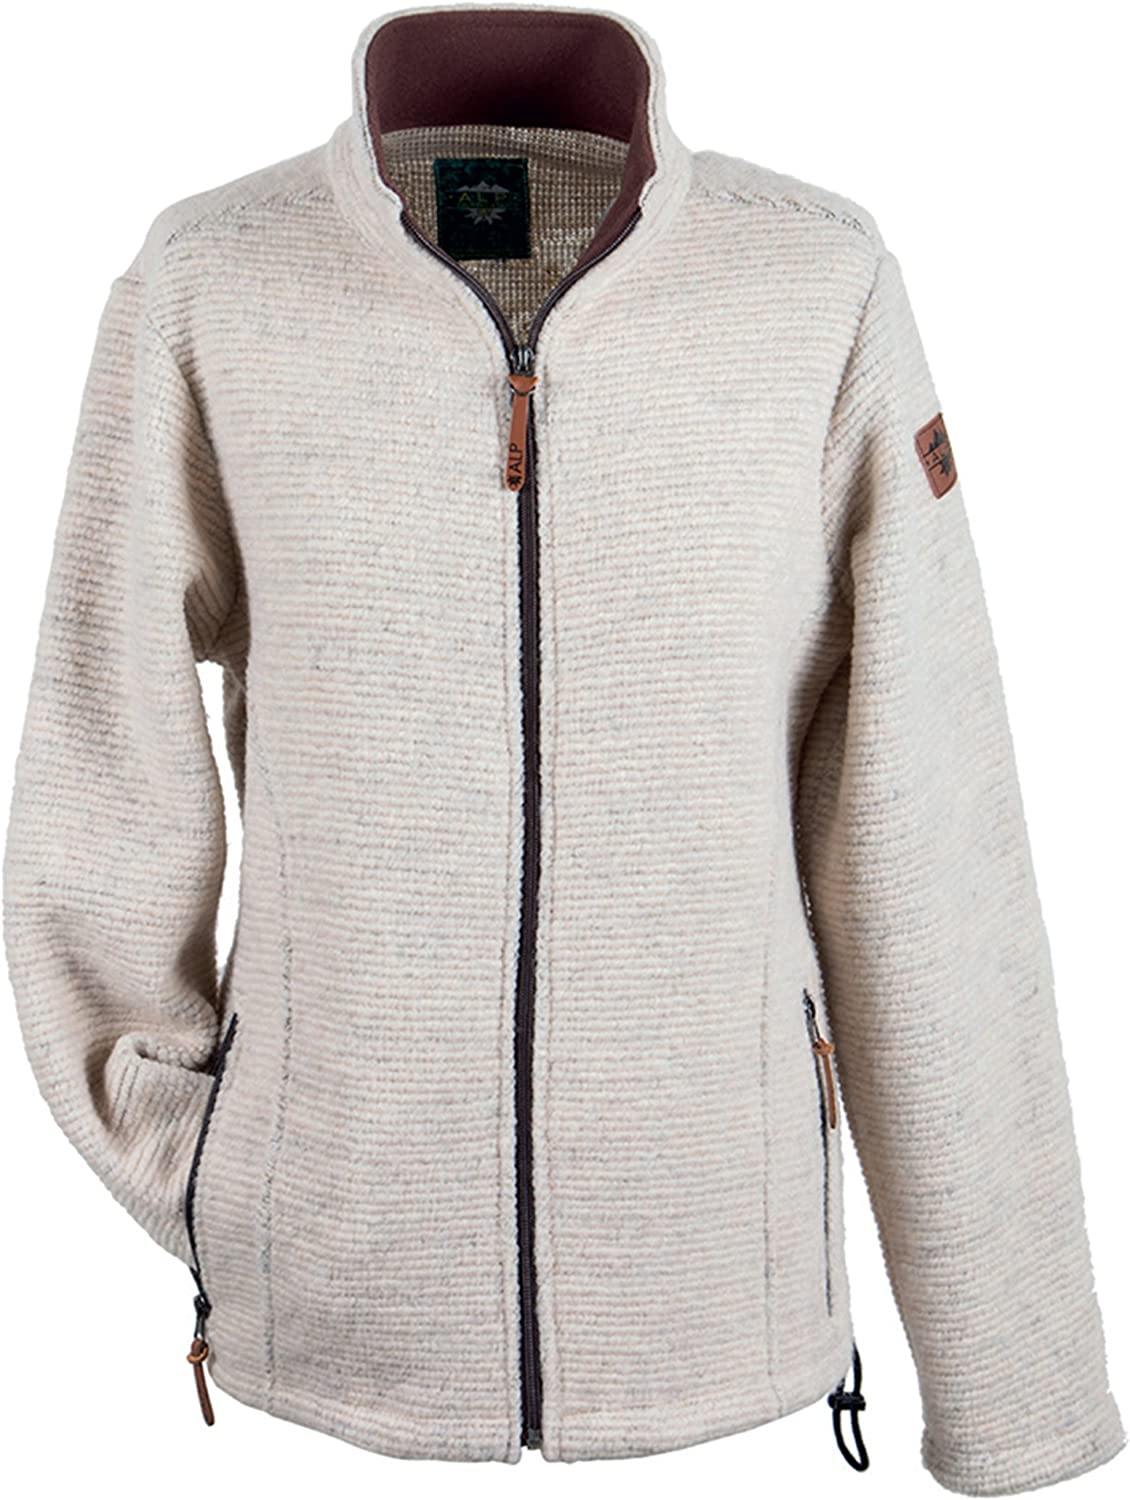 Alp by Brush Ladies KnittingSport Jacket with Contrasting Seams